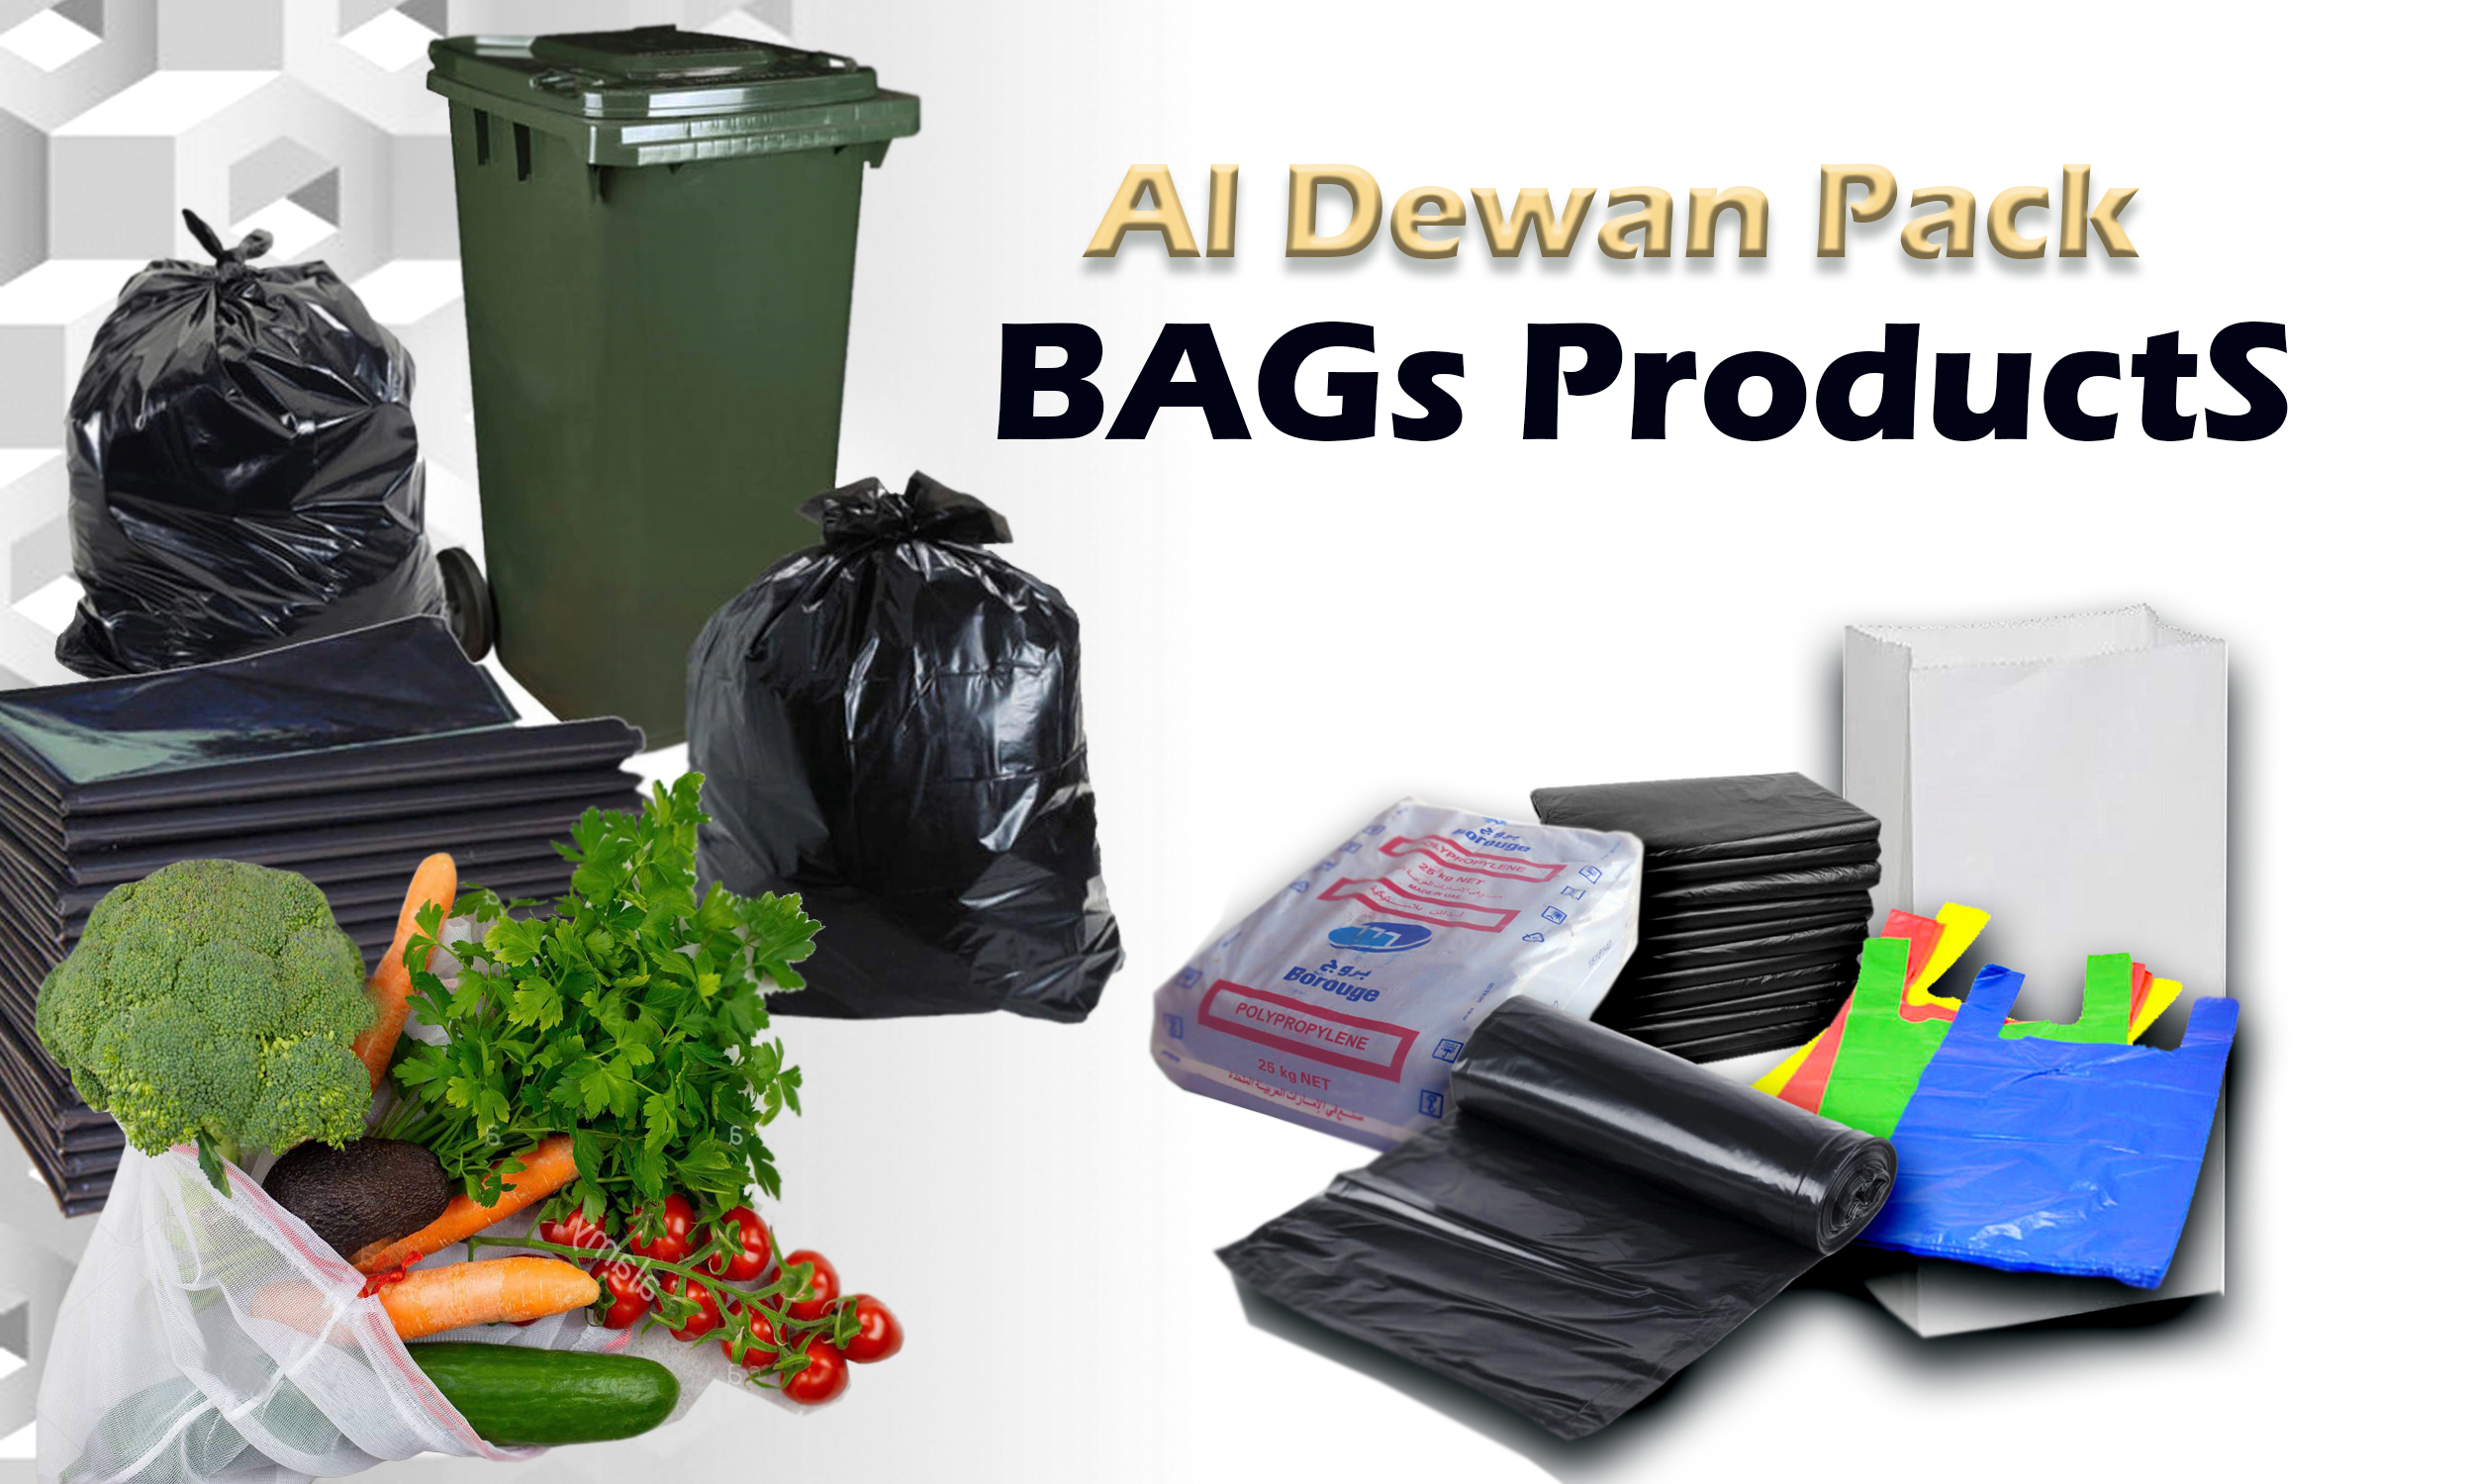 Bags Products